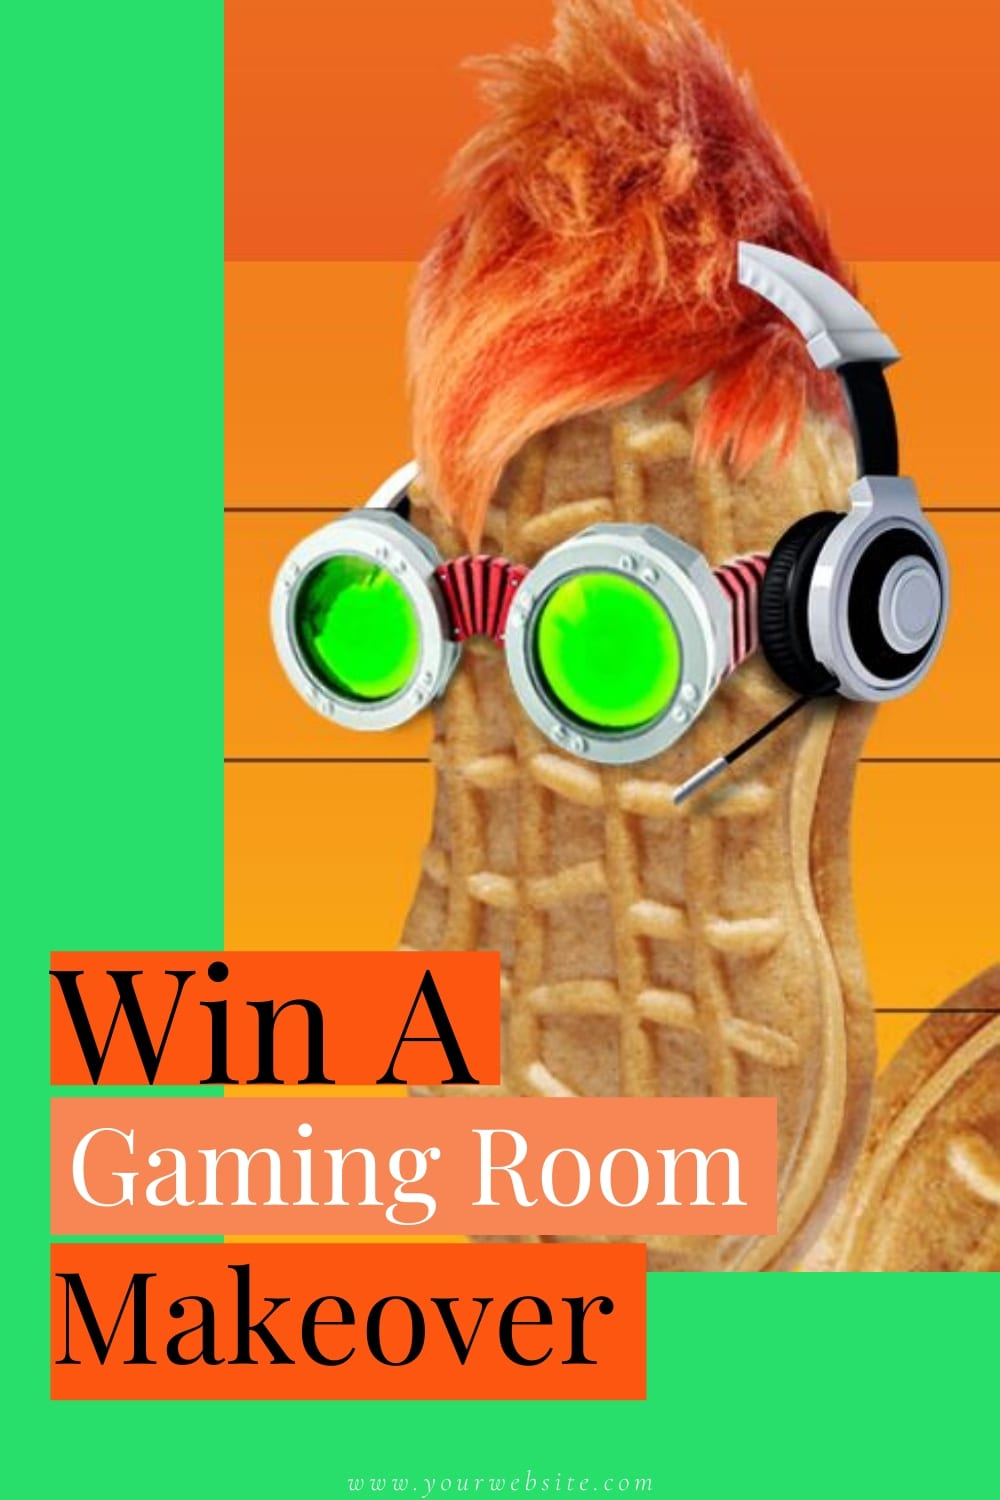 Win A Gaming Room Makeover -2 Winners ($7500 ARV) PLUS Instant Winners~ Sweeps Ends 7-31